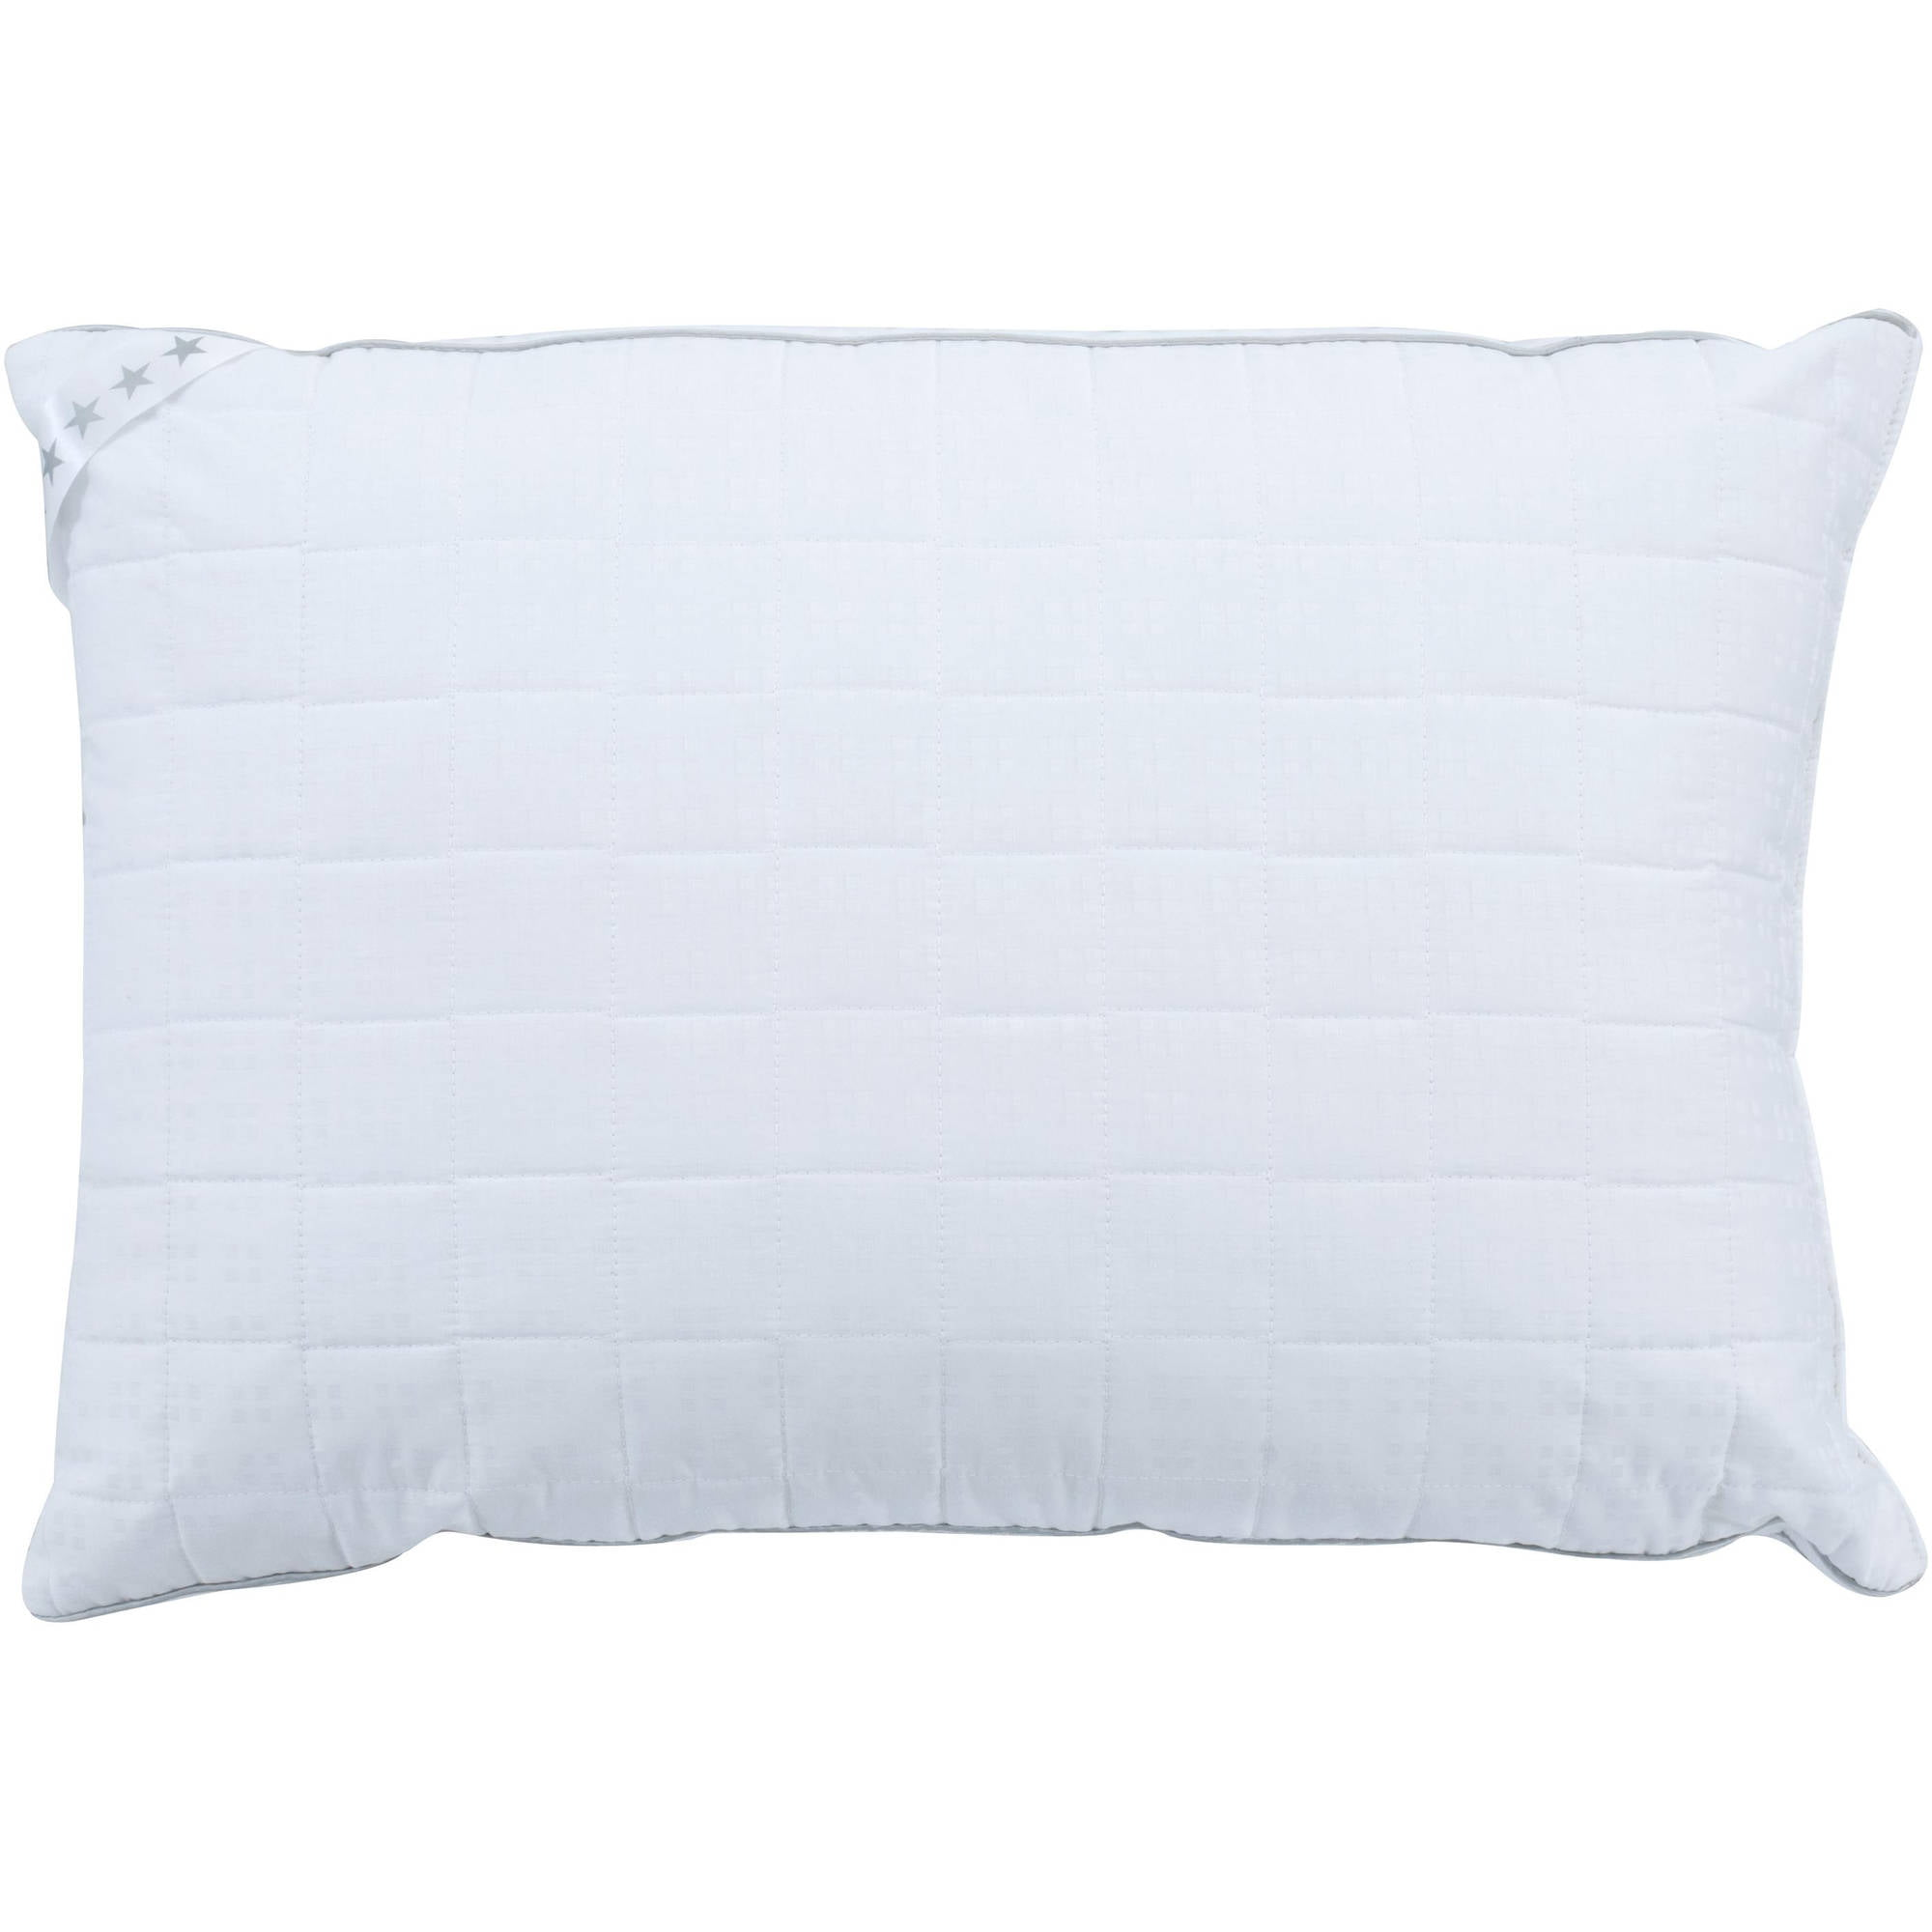 pillow sidesleeper product sleeper side yoga bp sleepers for sleep